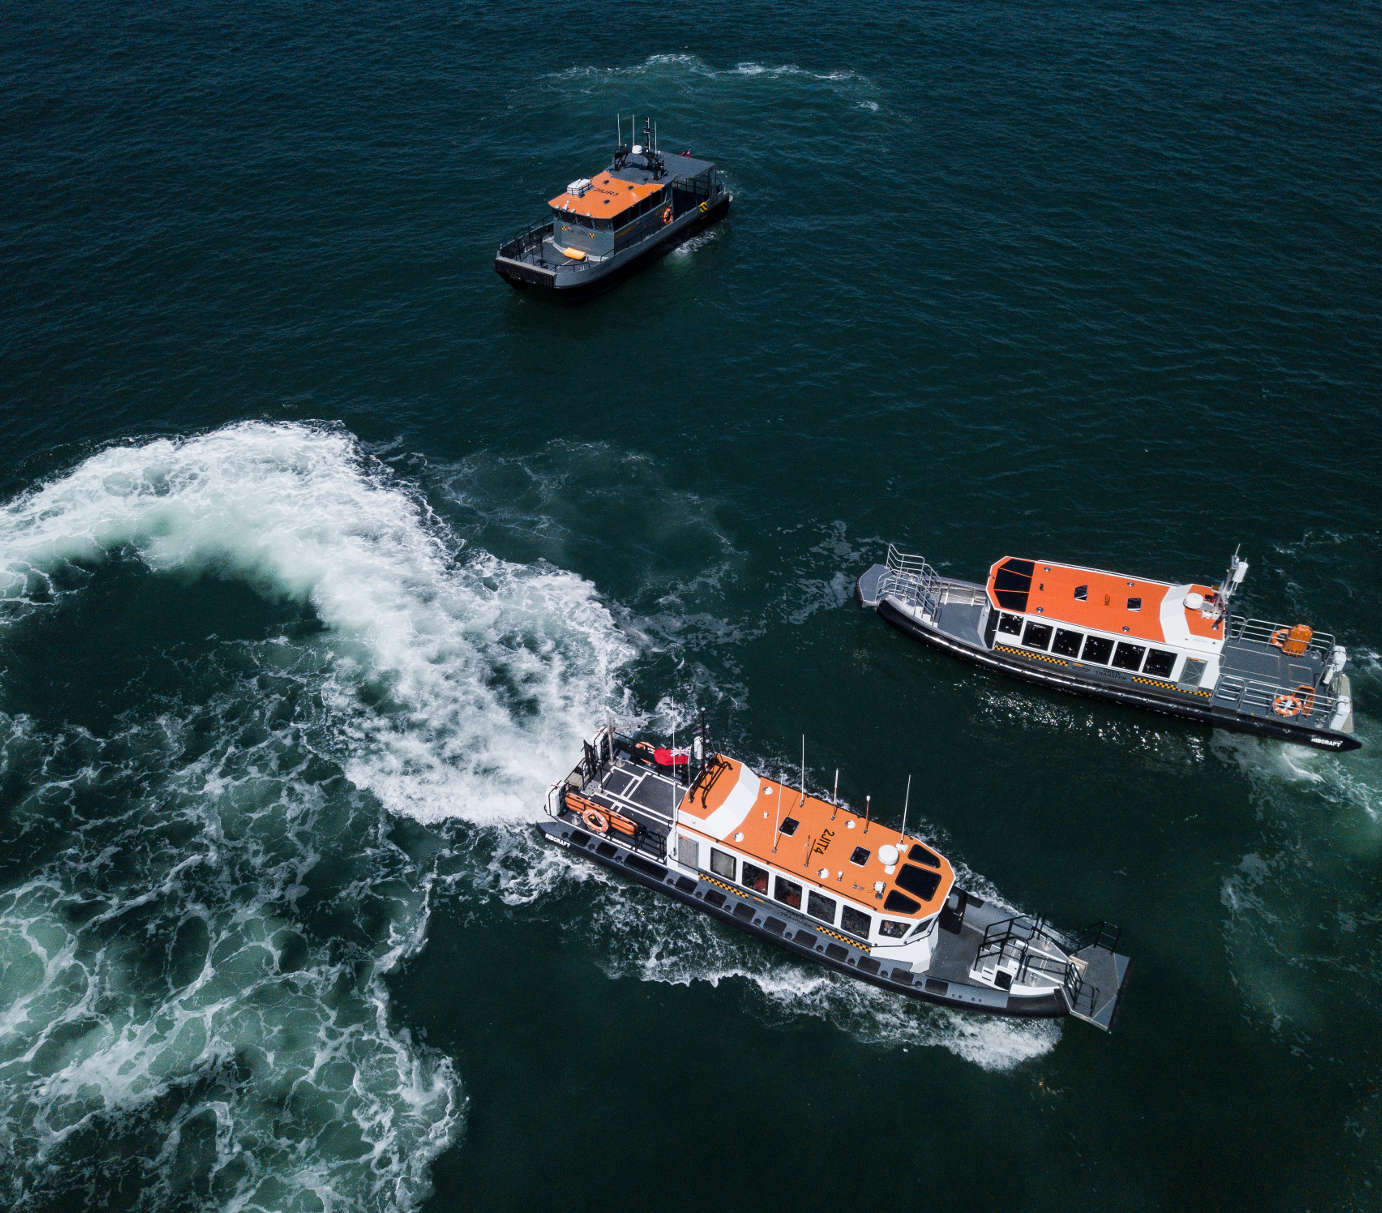 Commercial Rib Charter, Work Boat Services, Safety & Rescue